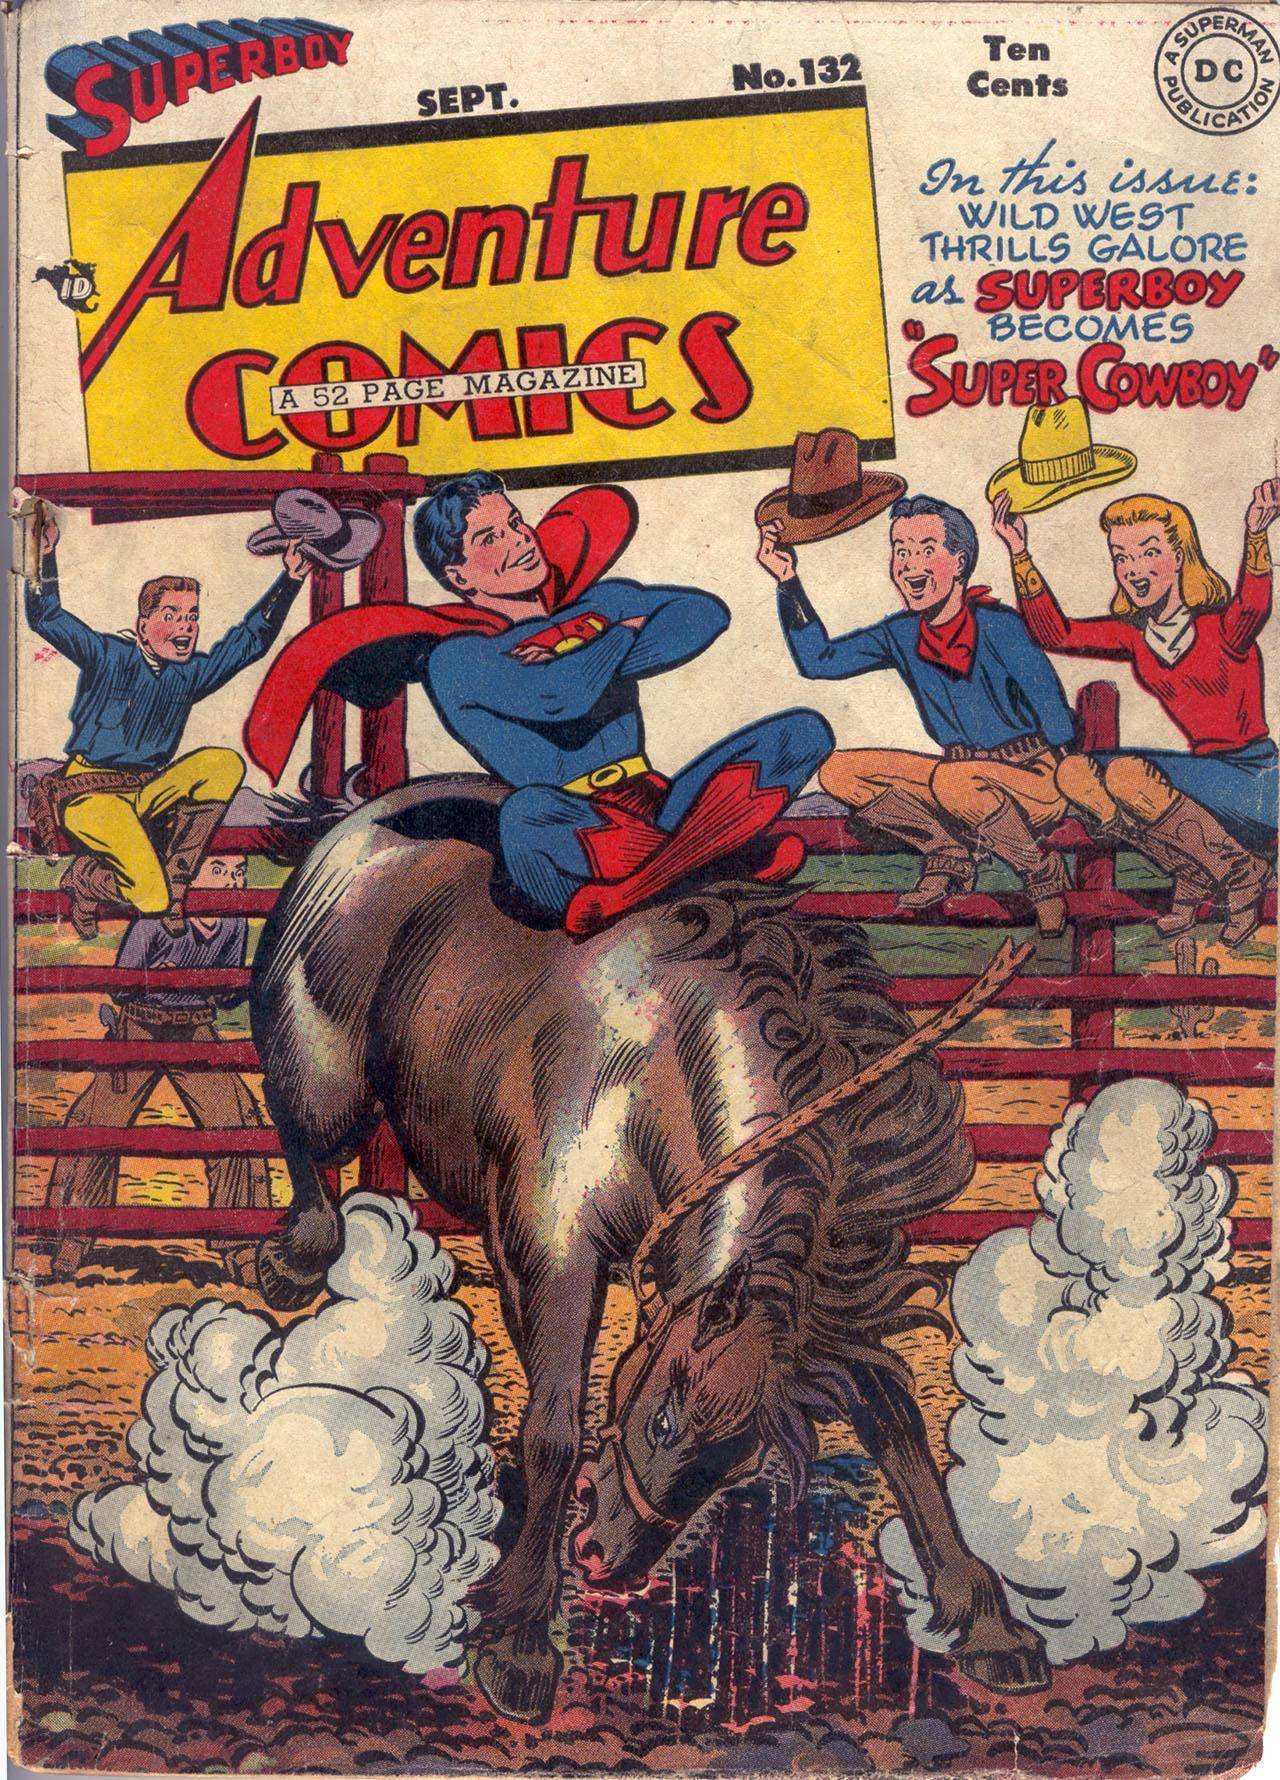 Adventure Comics 1948-09 132 not